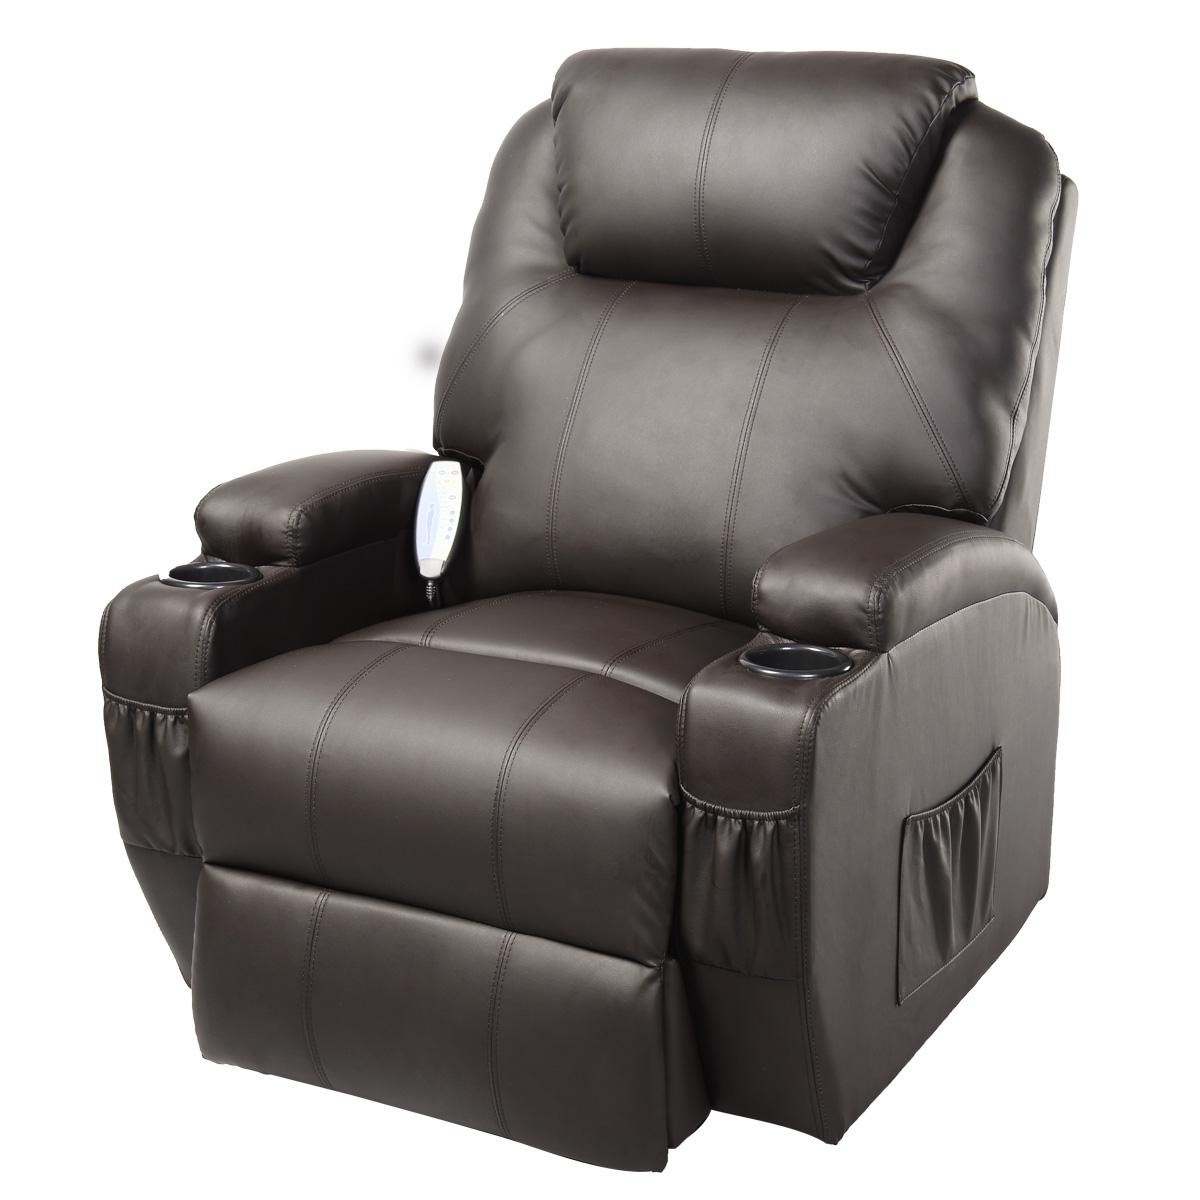 Costway Ergonomic Deluxe Massage Recliner Sofa Chair Lounge Inside Sofa Chair Recliner (Photo 1 of 20)